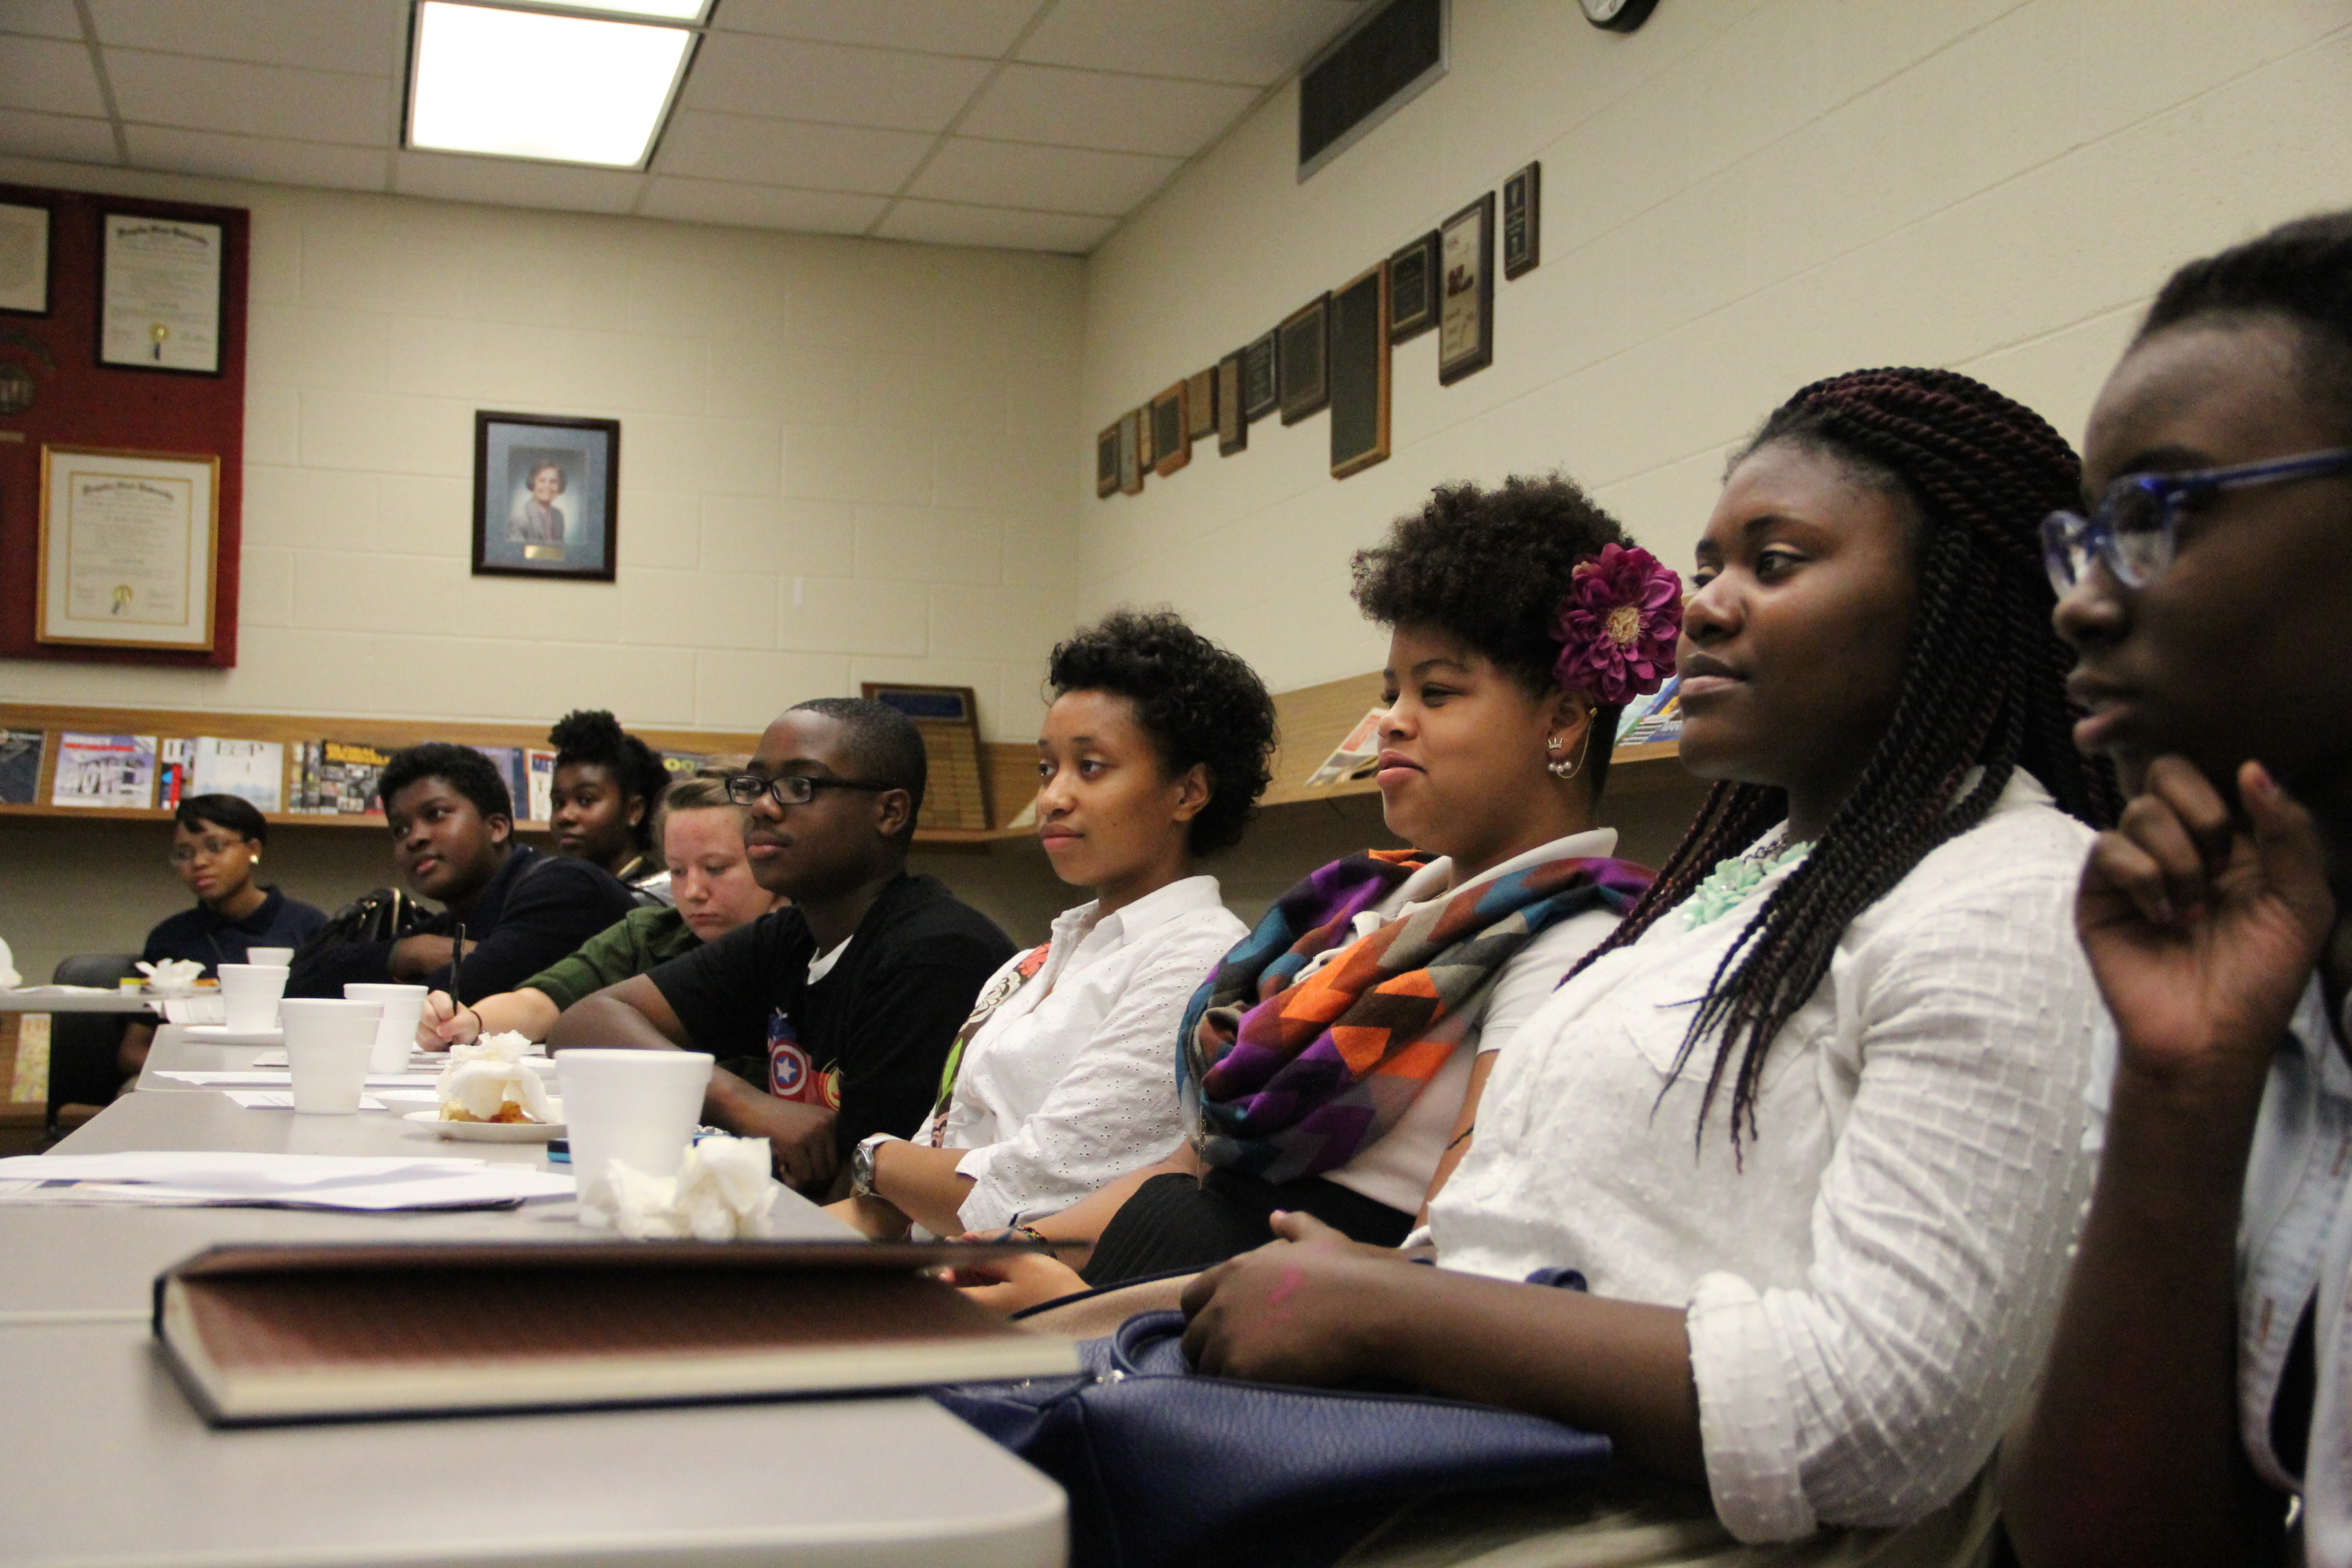 Student journalists with The Teen Appeal meet for their monthly editorial meeting on the campus of the University of Memphis.